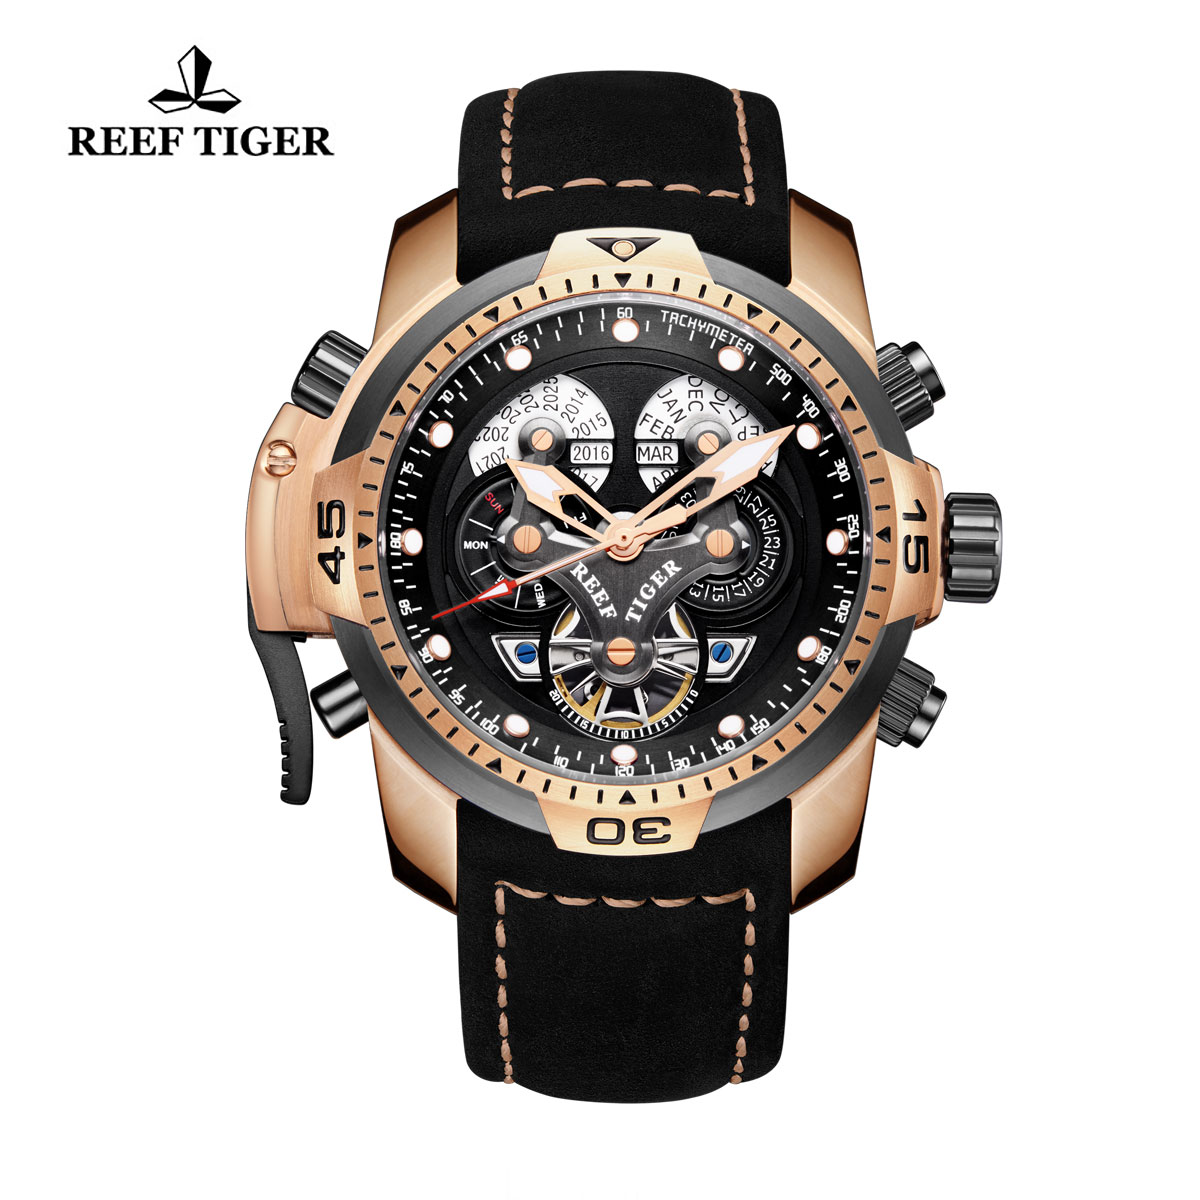 Reef Tiger Concept Sport Watches Automatic Watch Rose Gold Case Black Leather RGA3503-PBBLB